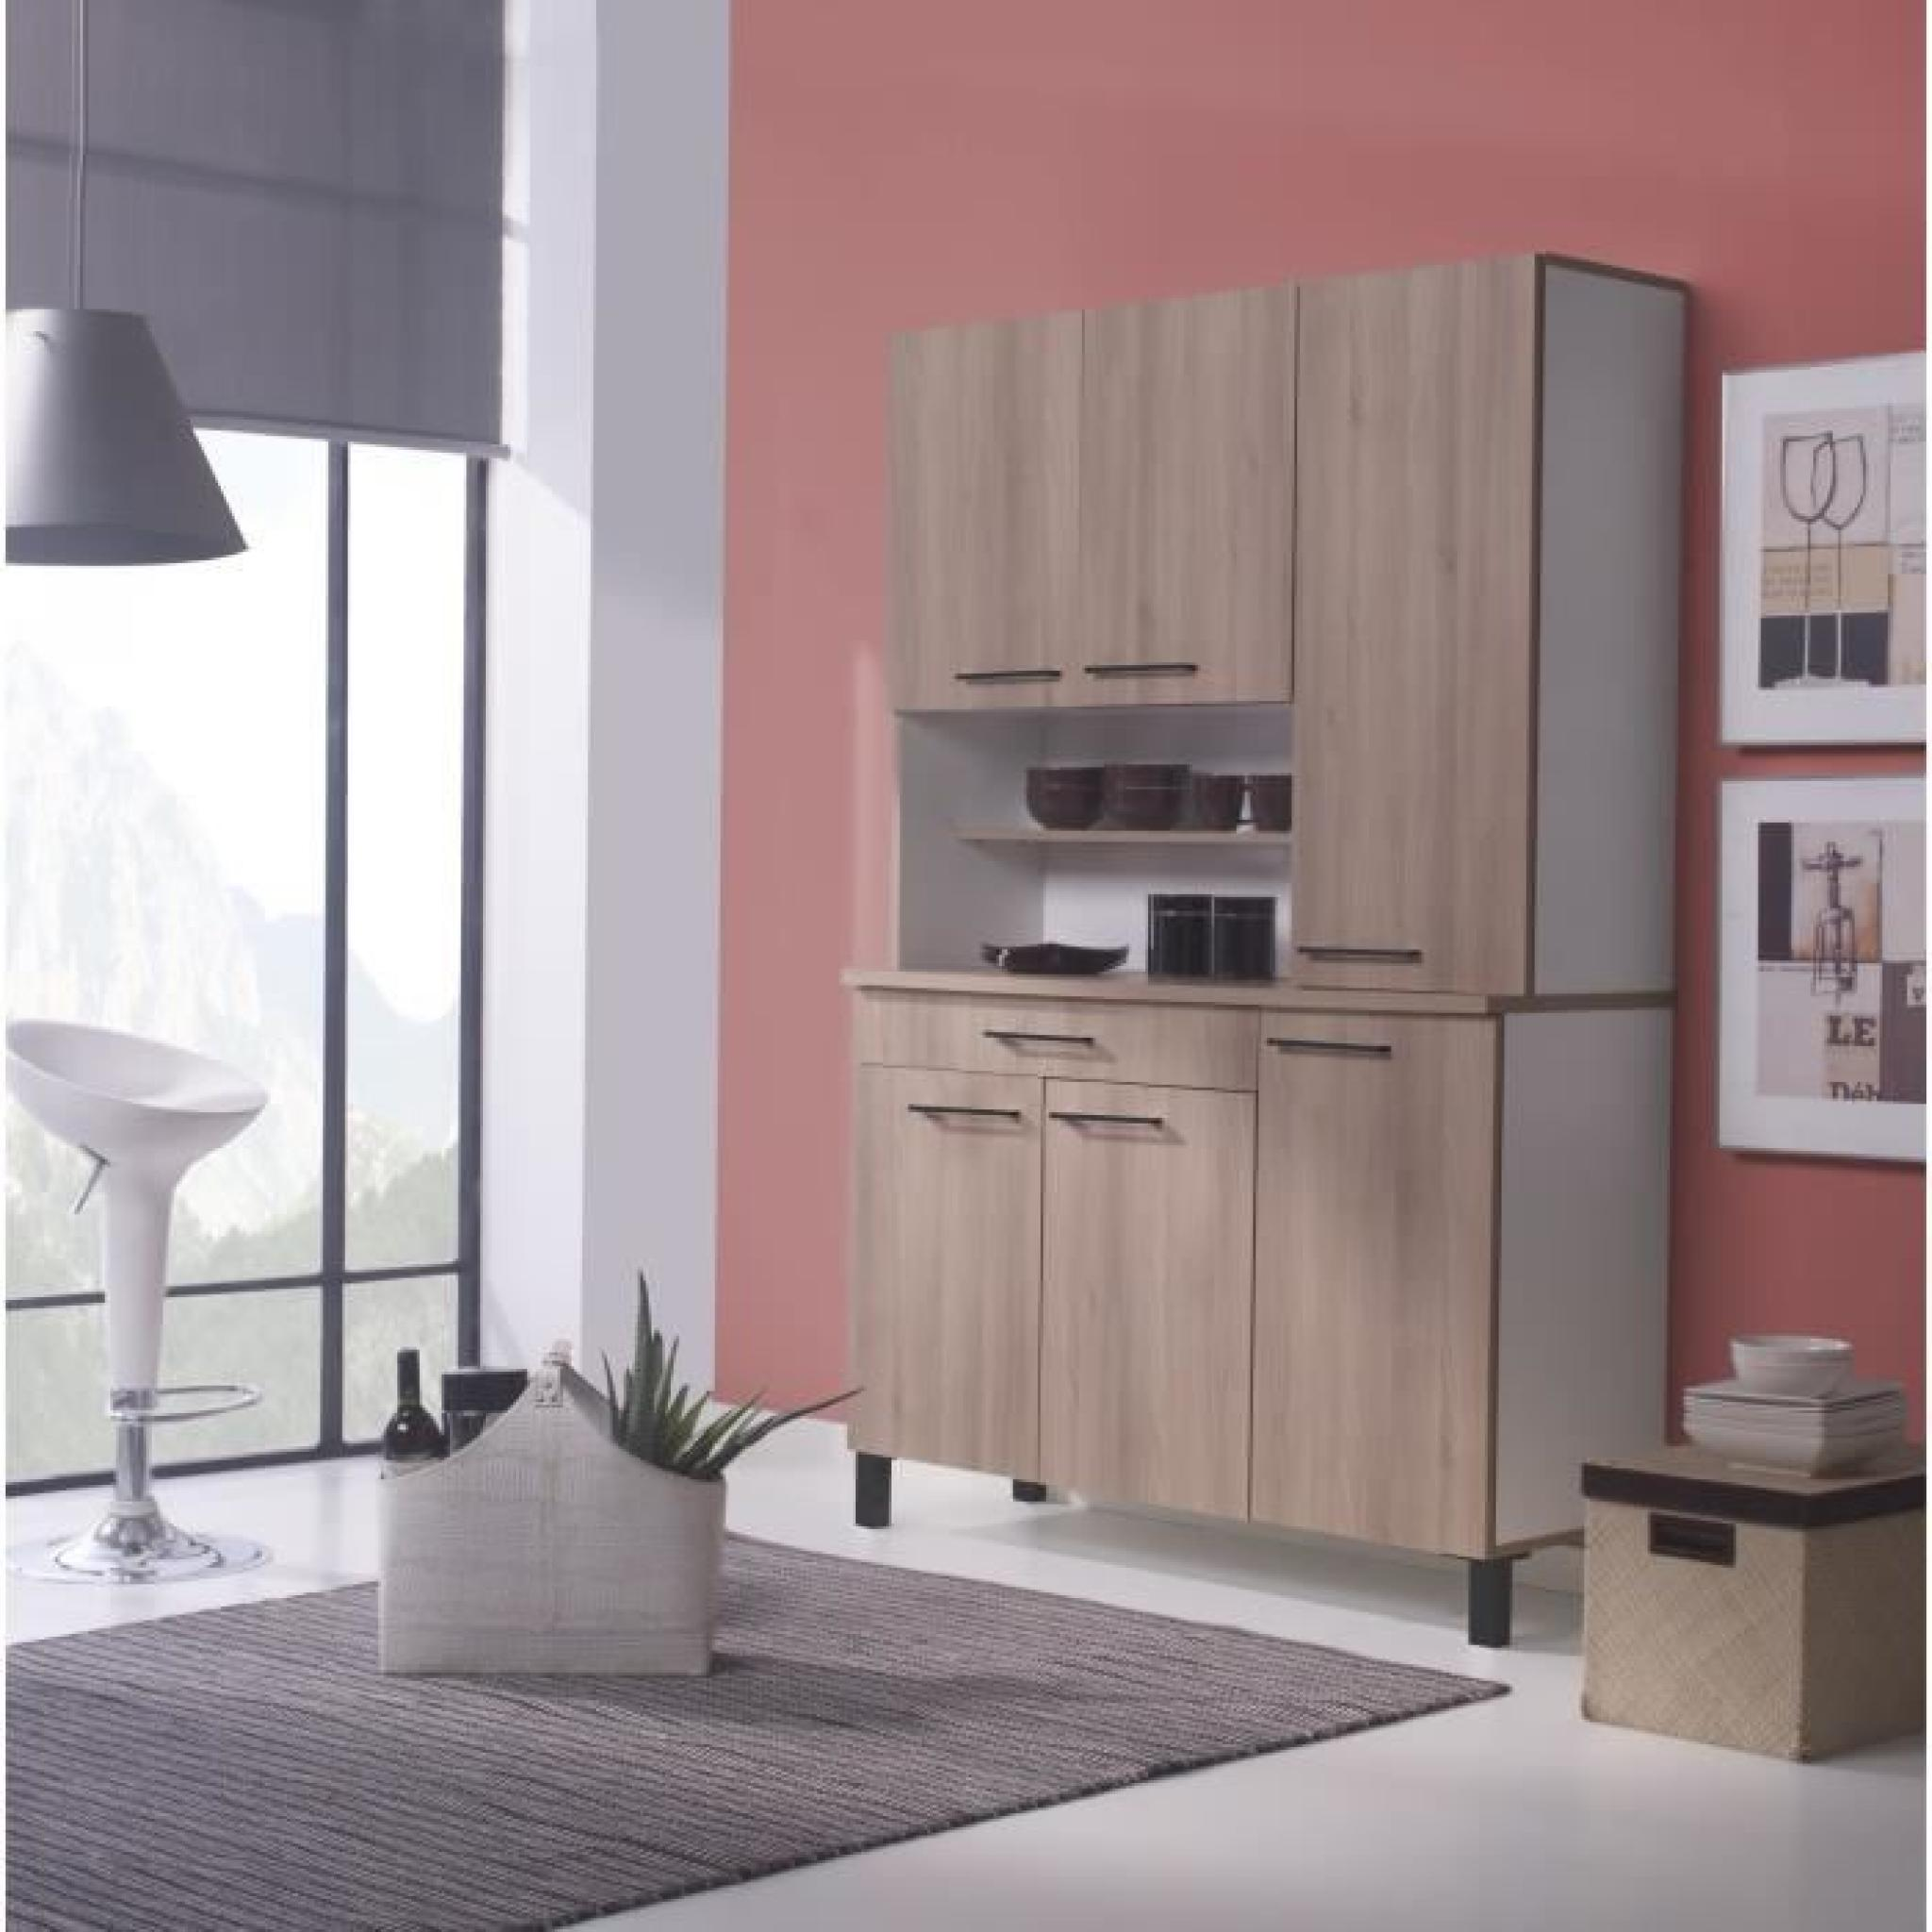 agueda buffet de cuisine 120cm d cor ch ne achat vente buffet de cuisine pas cher couleur. Black Bedroom Furniture Sets. Home Design Ideas